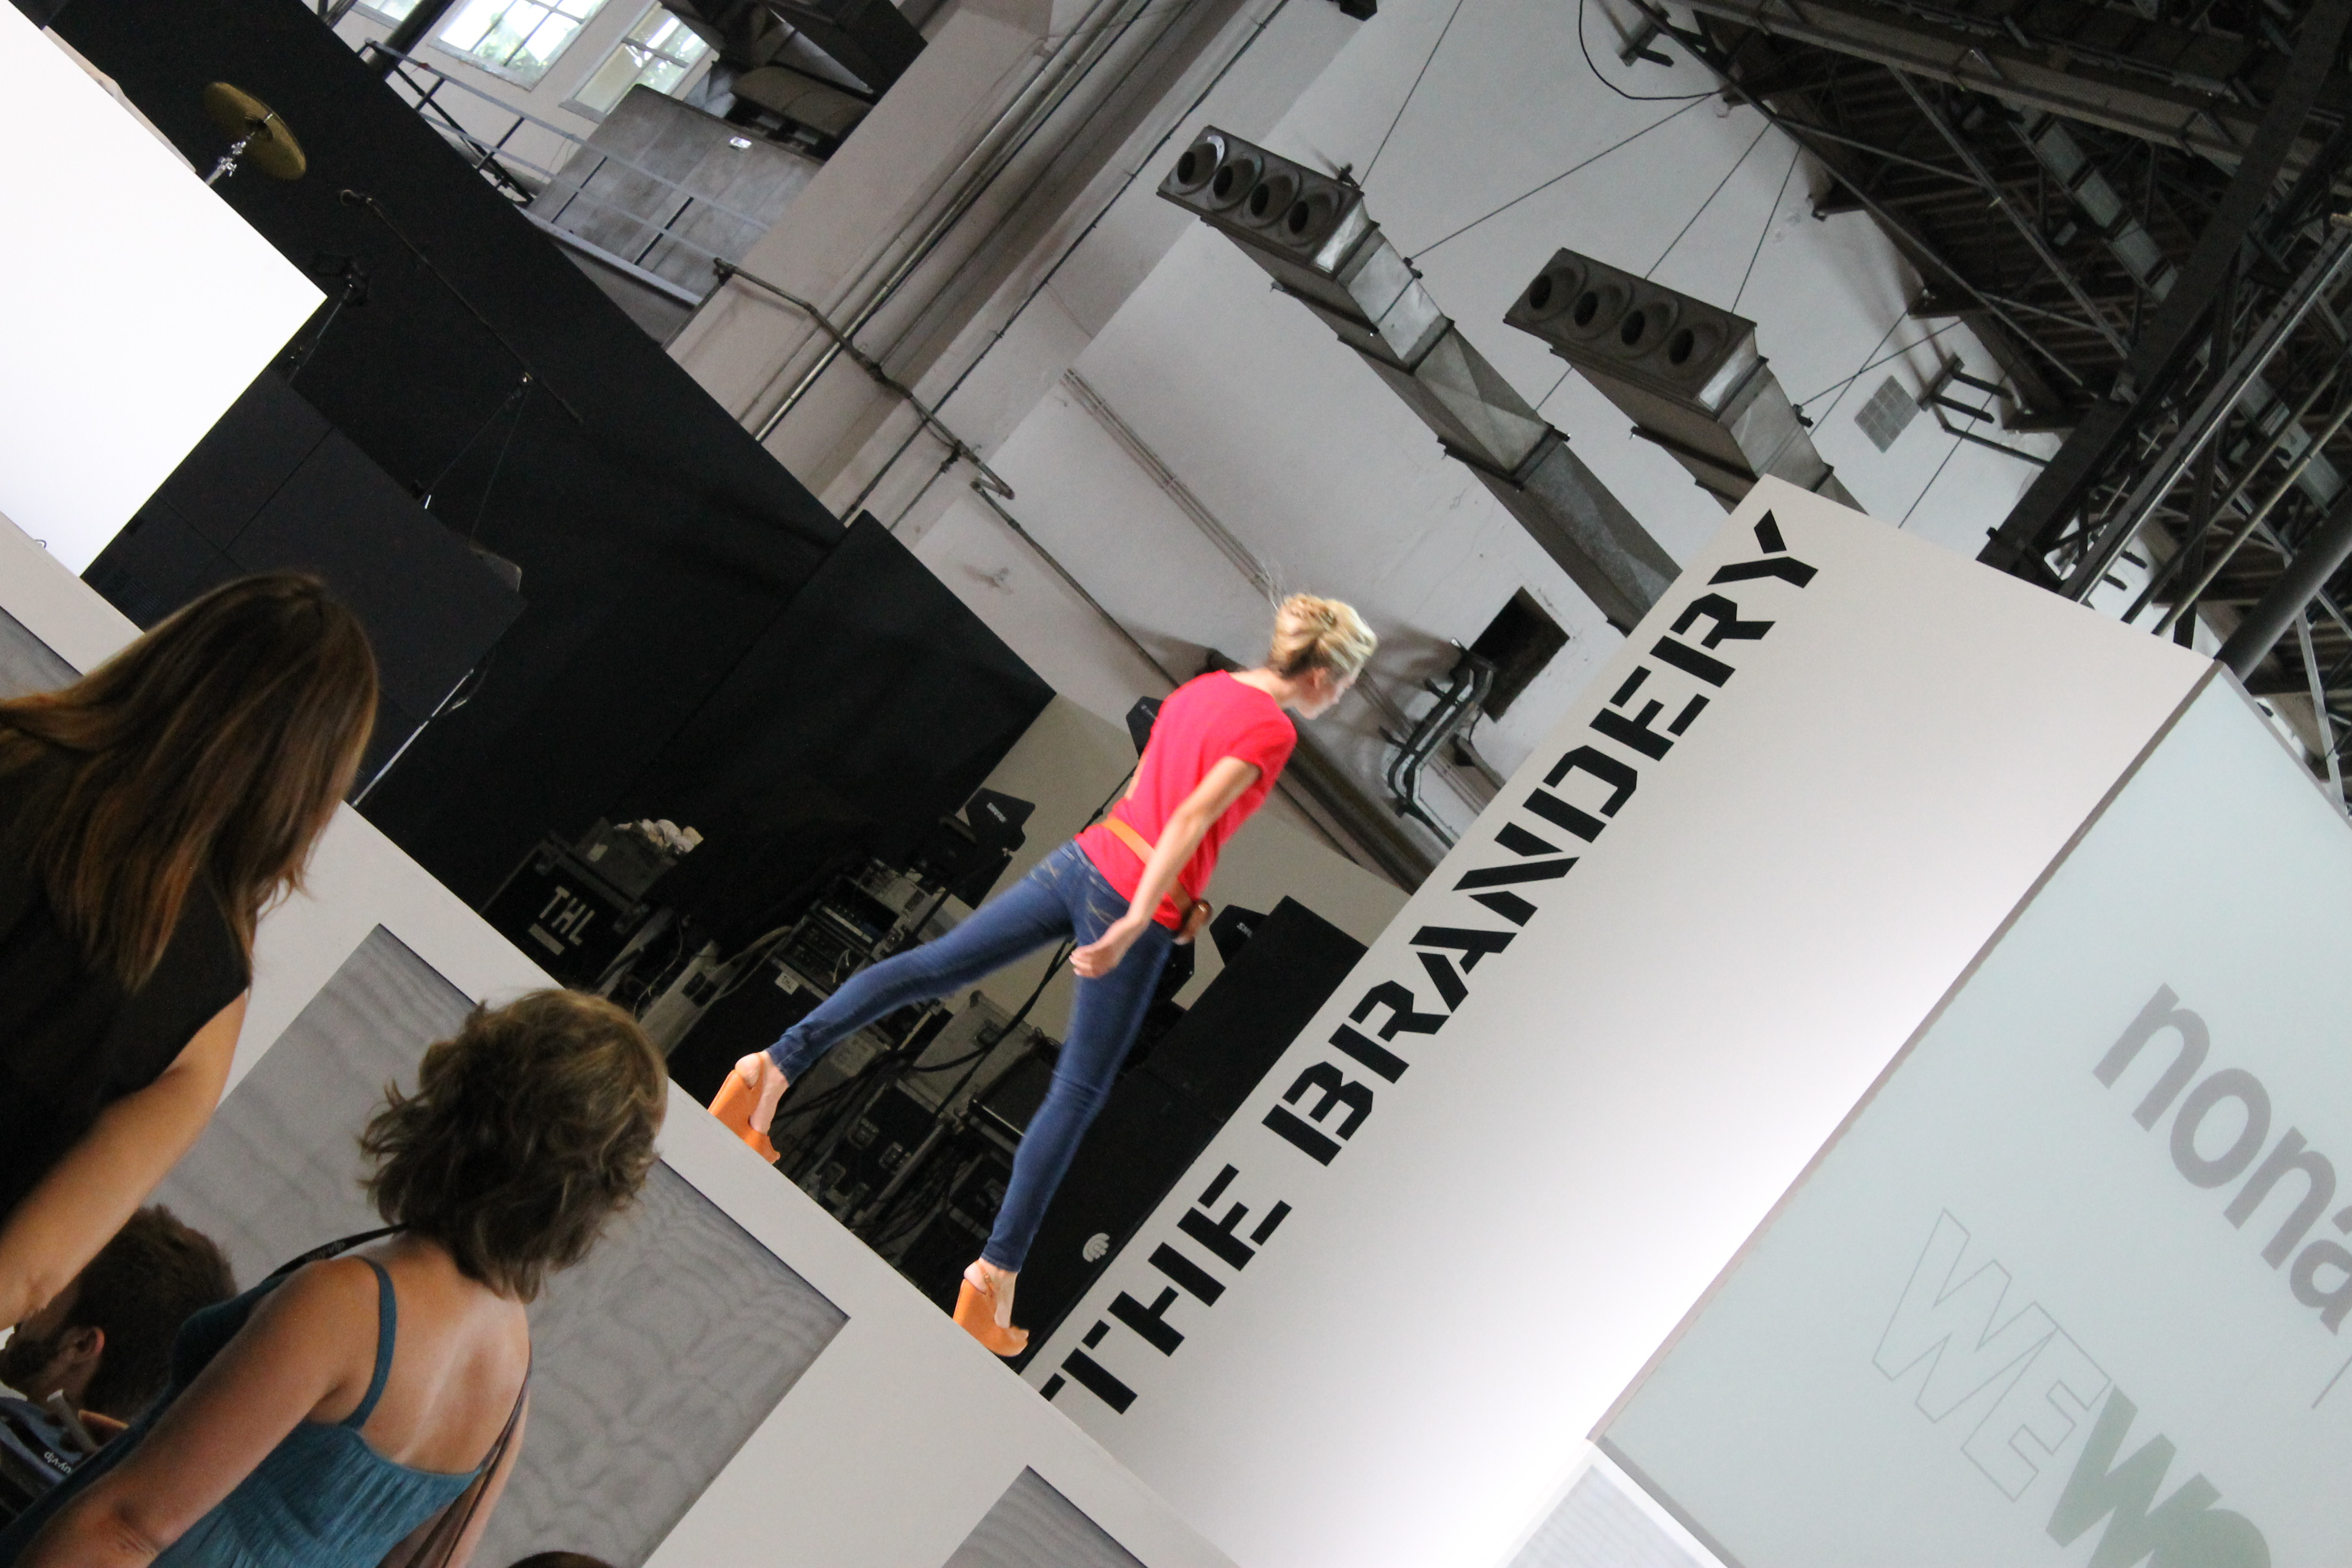 The Brandery: desfiles, stands y mojitos